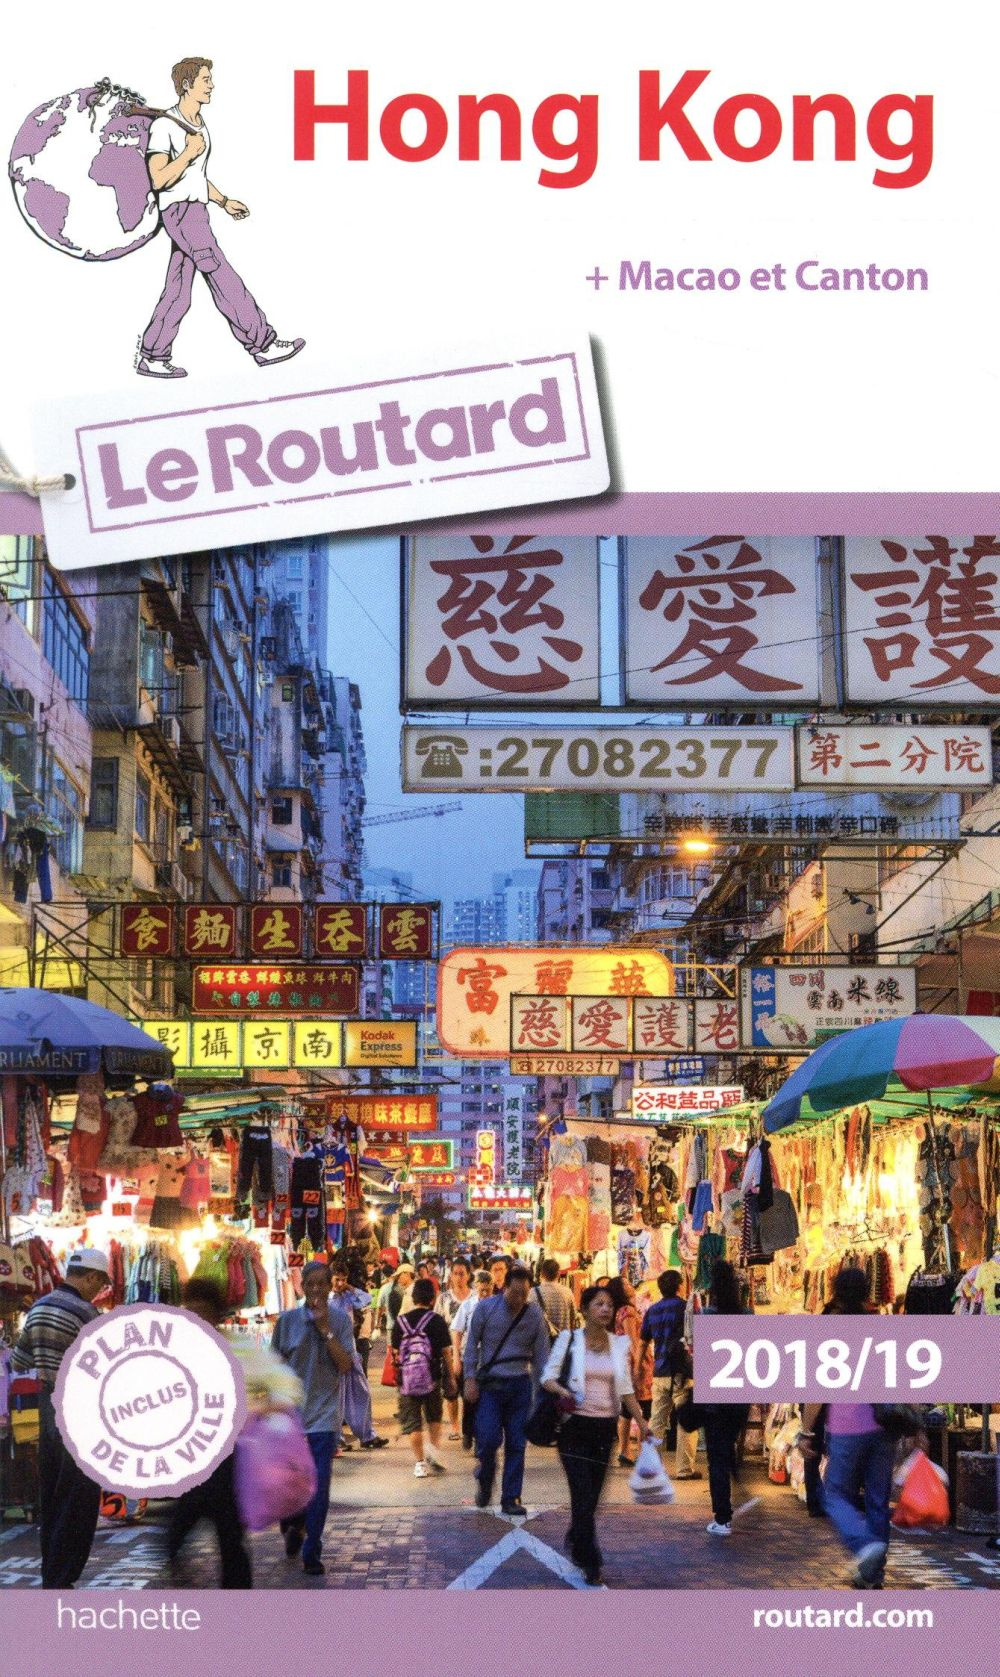 GUIDE DU ROUTARD HONG KONG 201819 - + MACAO ET CANTON